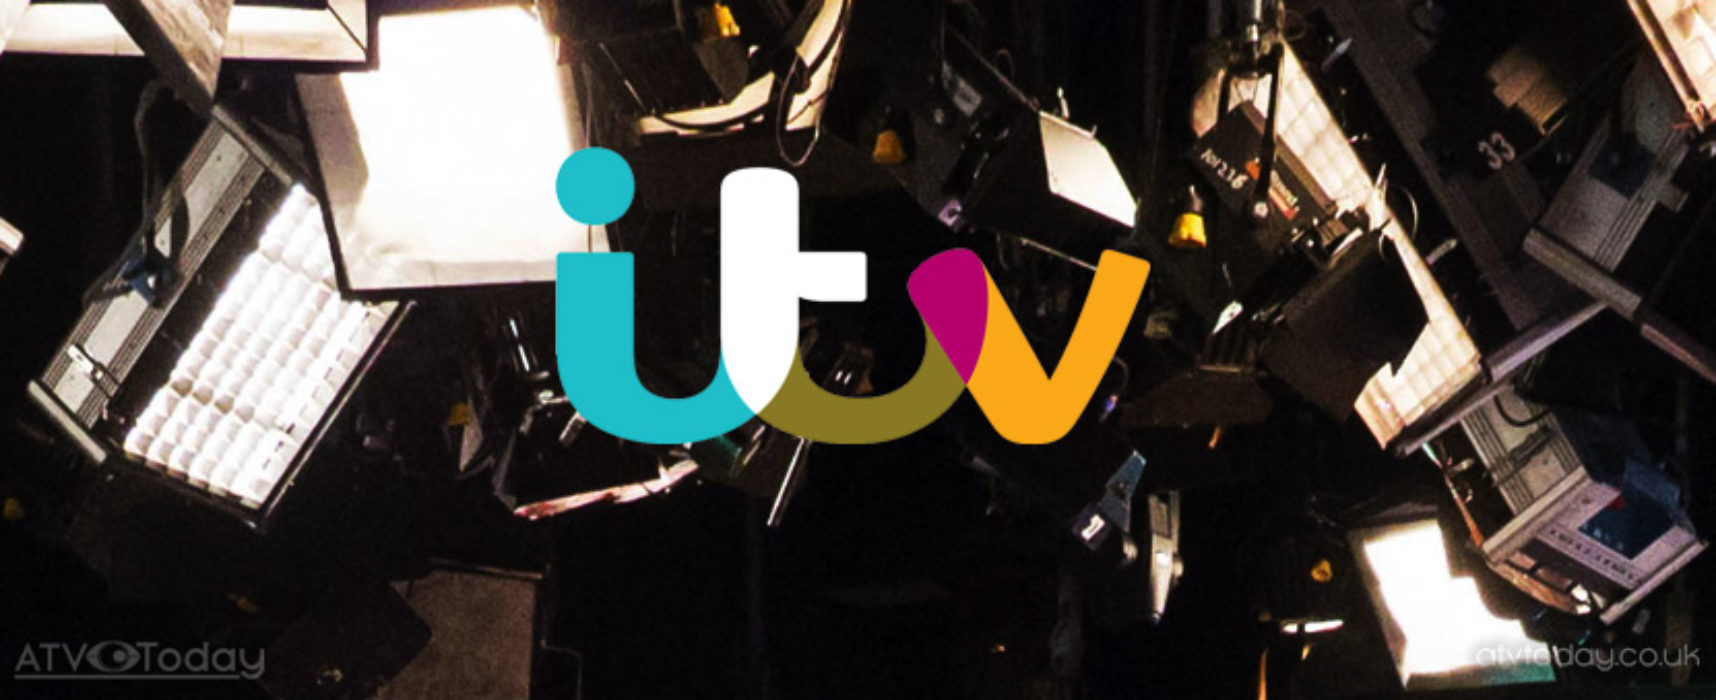 Rob Lowe joins ITV for Wild Bill drama